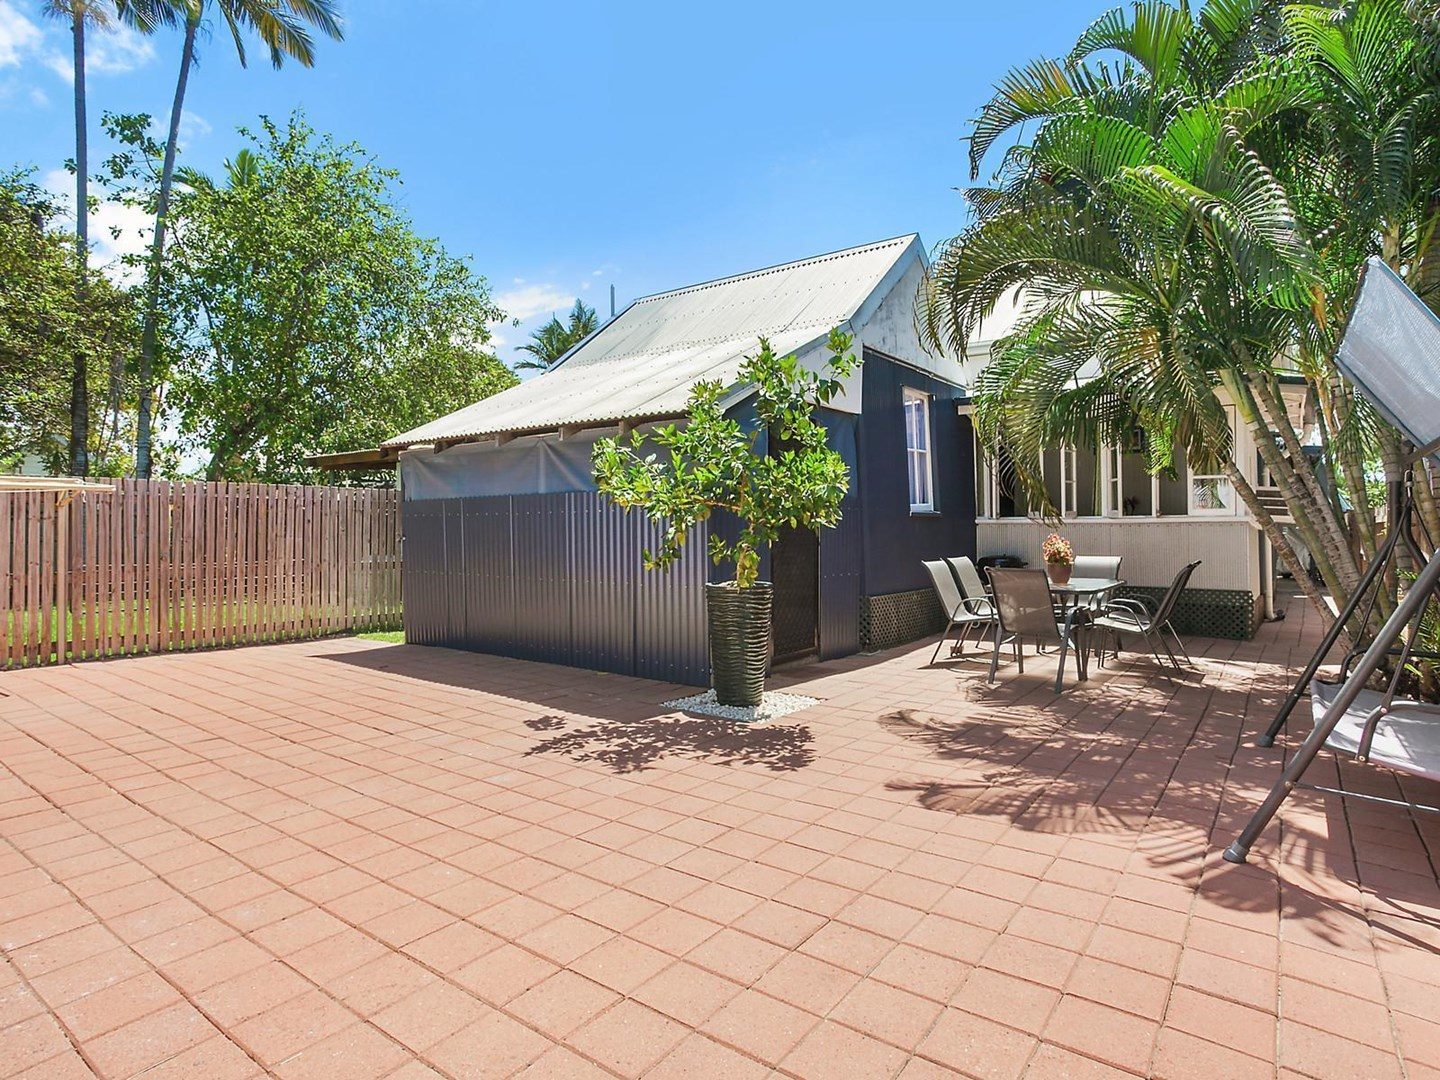 For Sale, price  guide $230,000  - $270,000 (under offer)